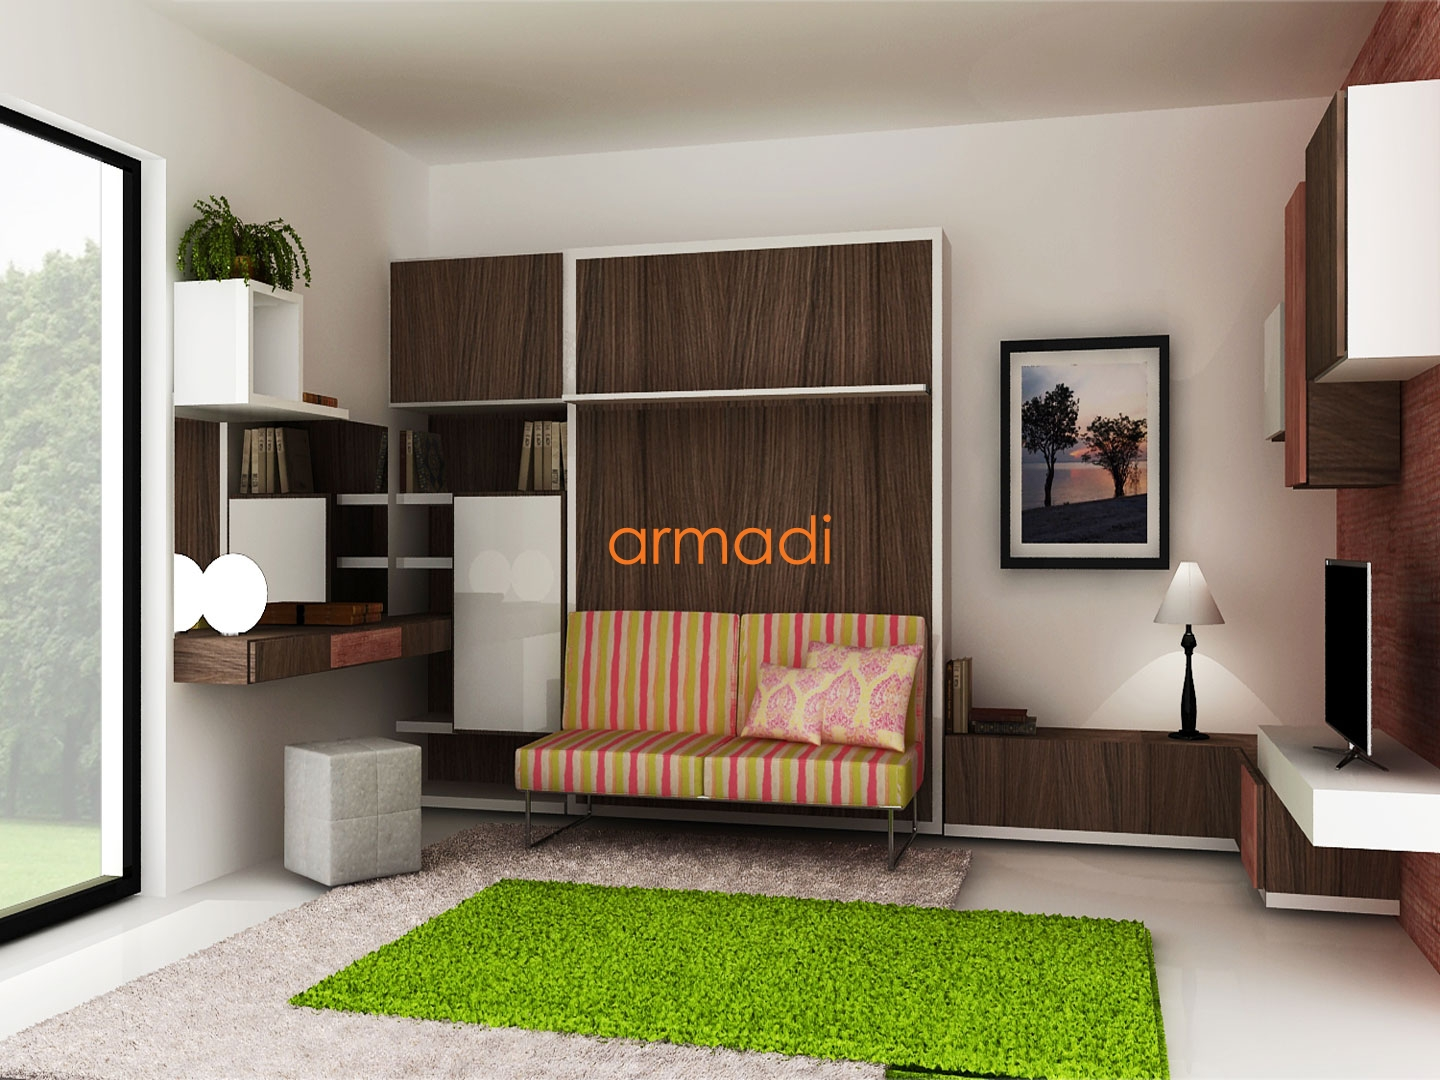 Custom wall beds images home wall decoration ideas custom wall beds armadi casa wb6 amipublicfo images amipublicfo Gallery